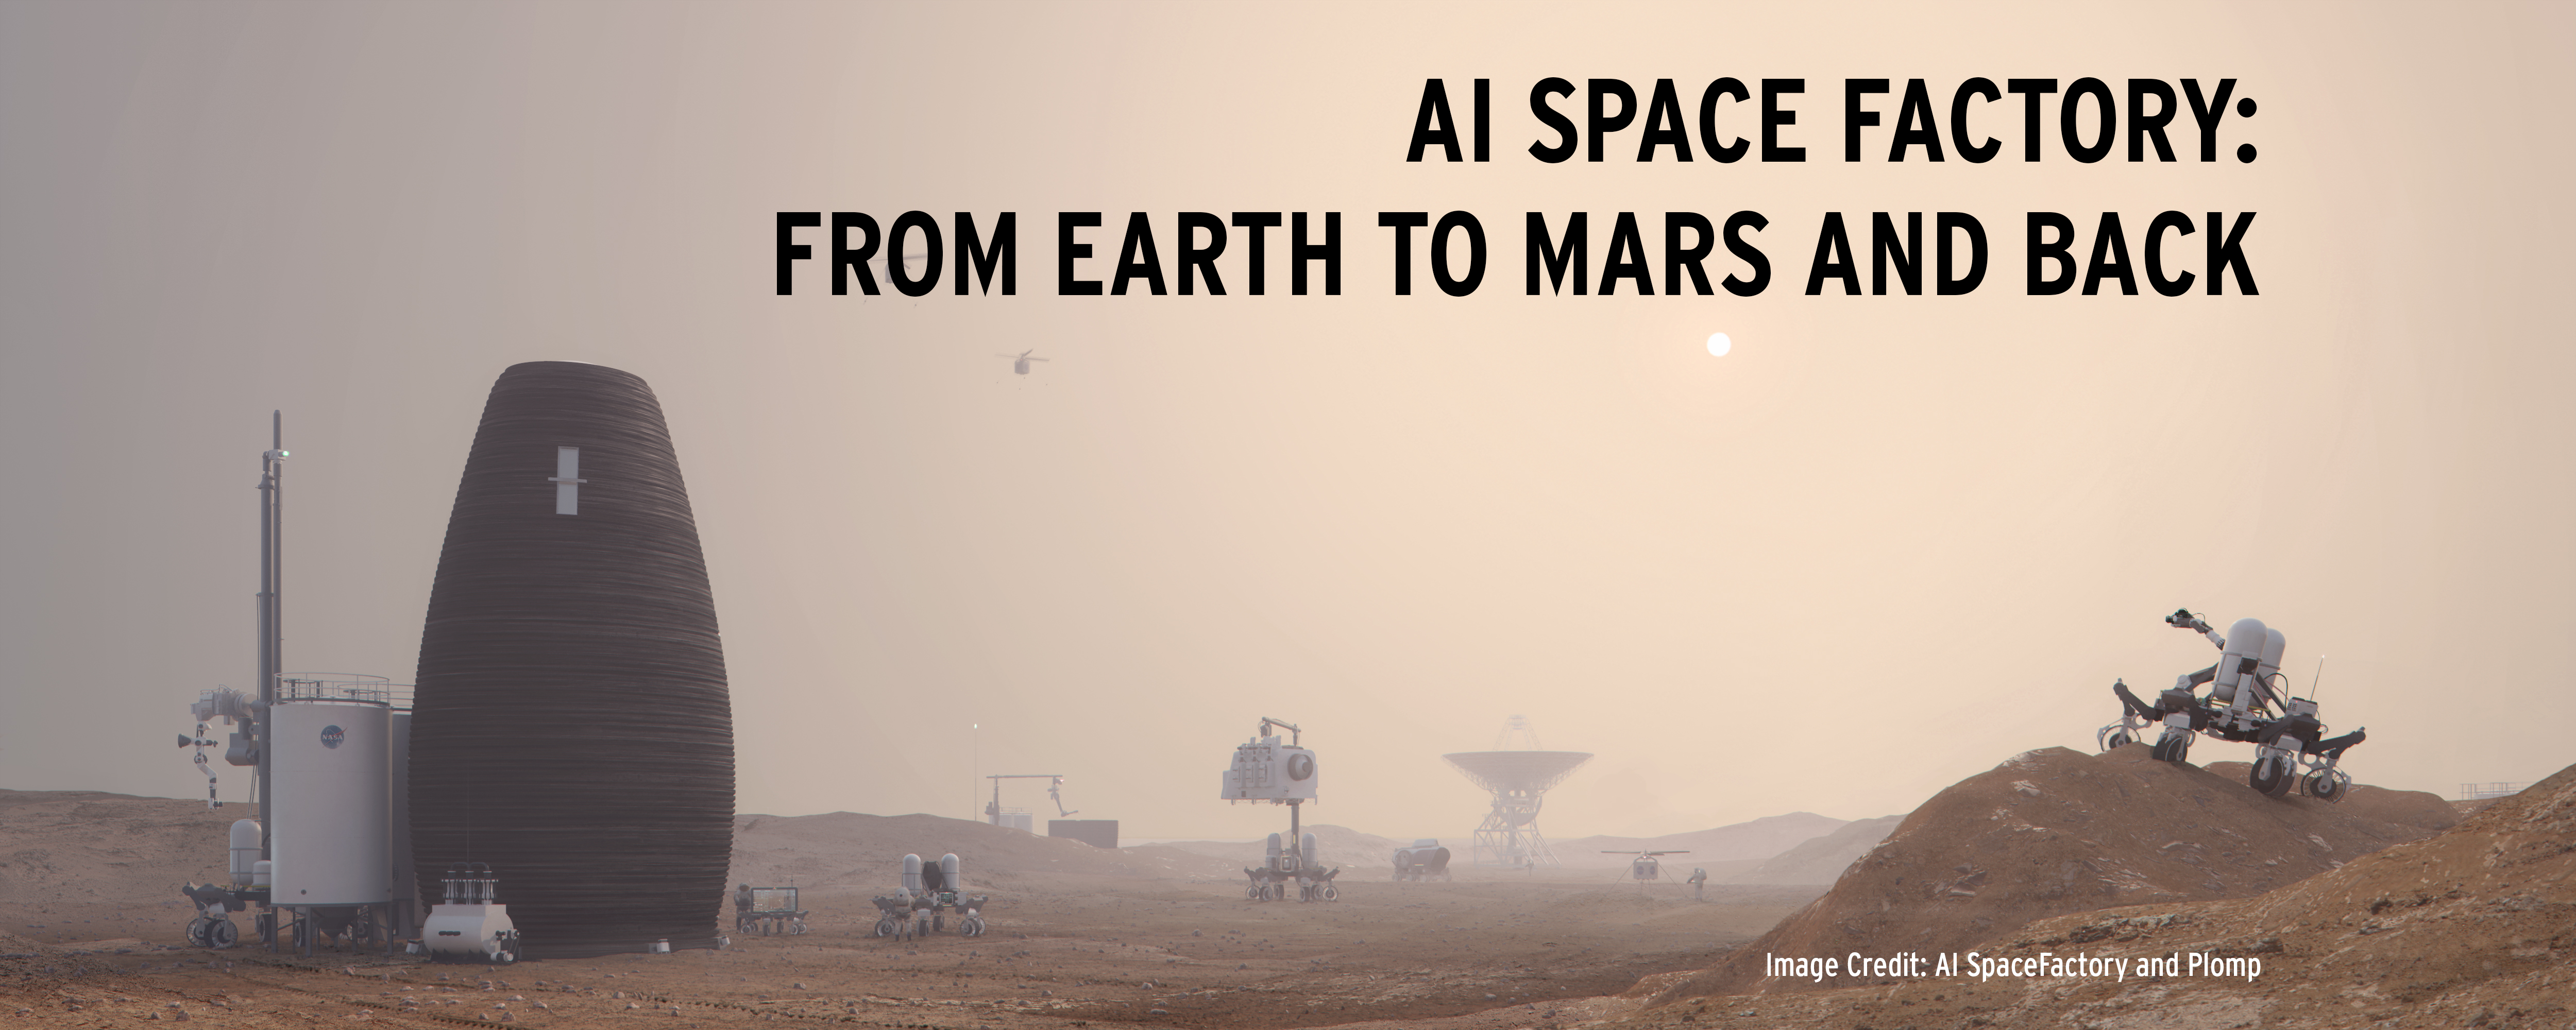 AI Space Factory: From Earth to Mars and Back